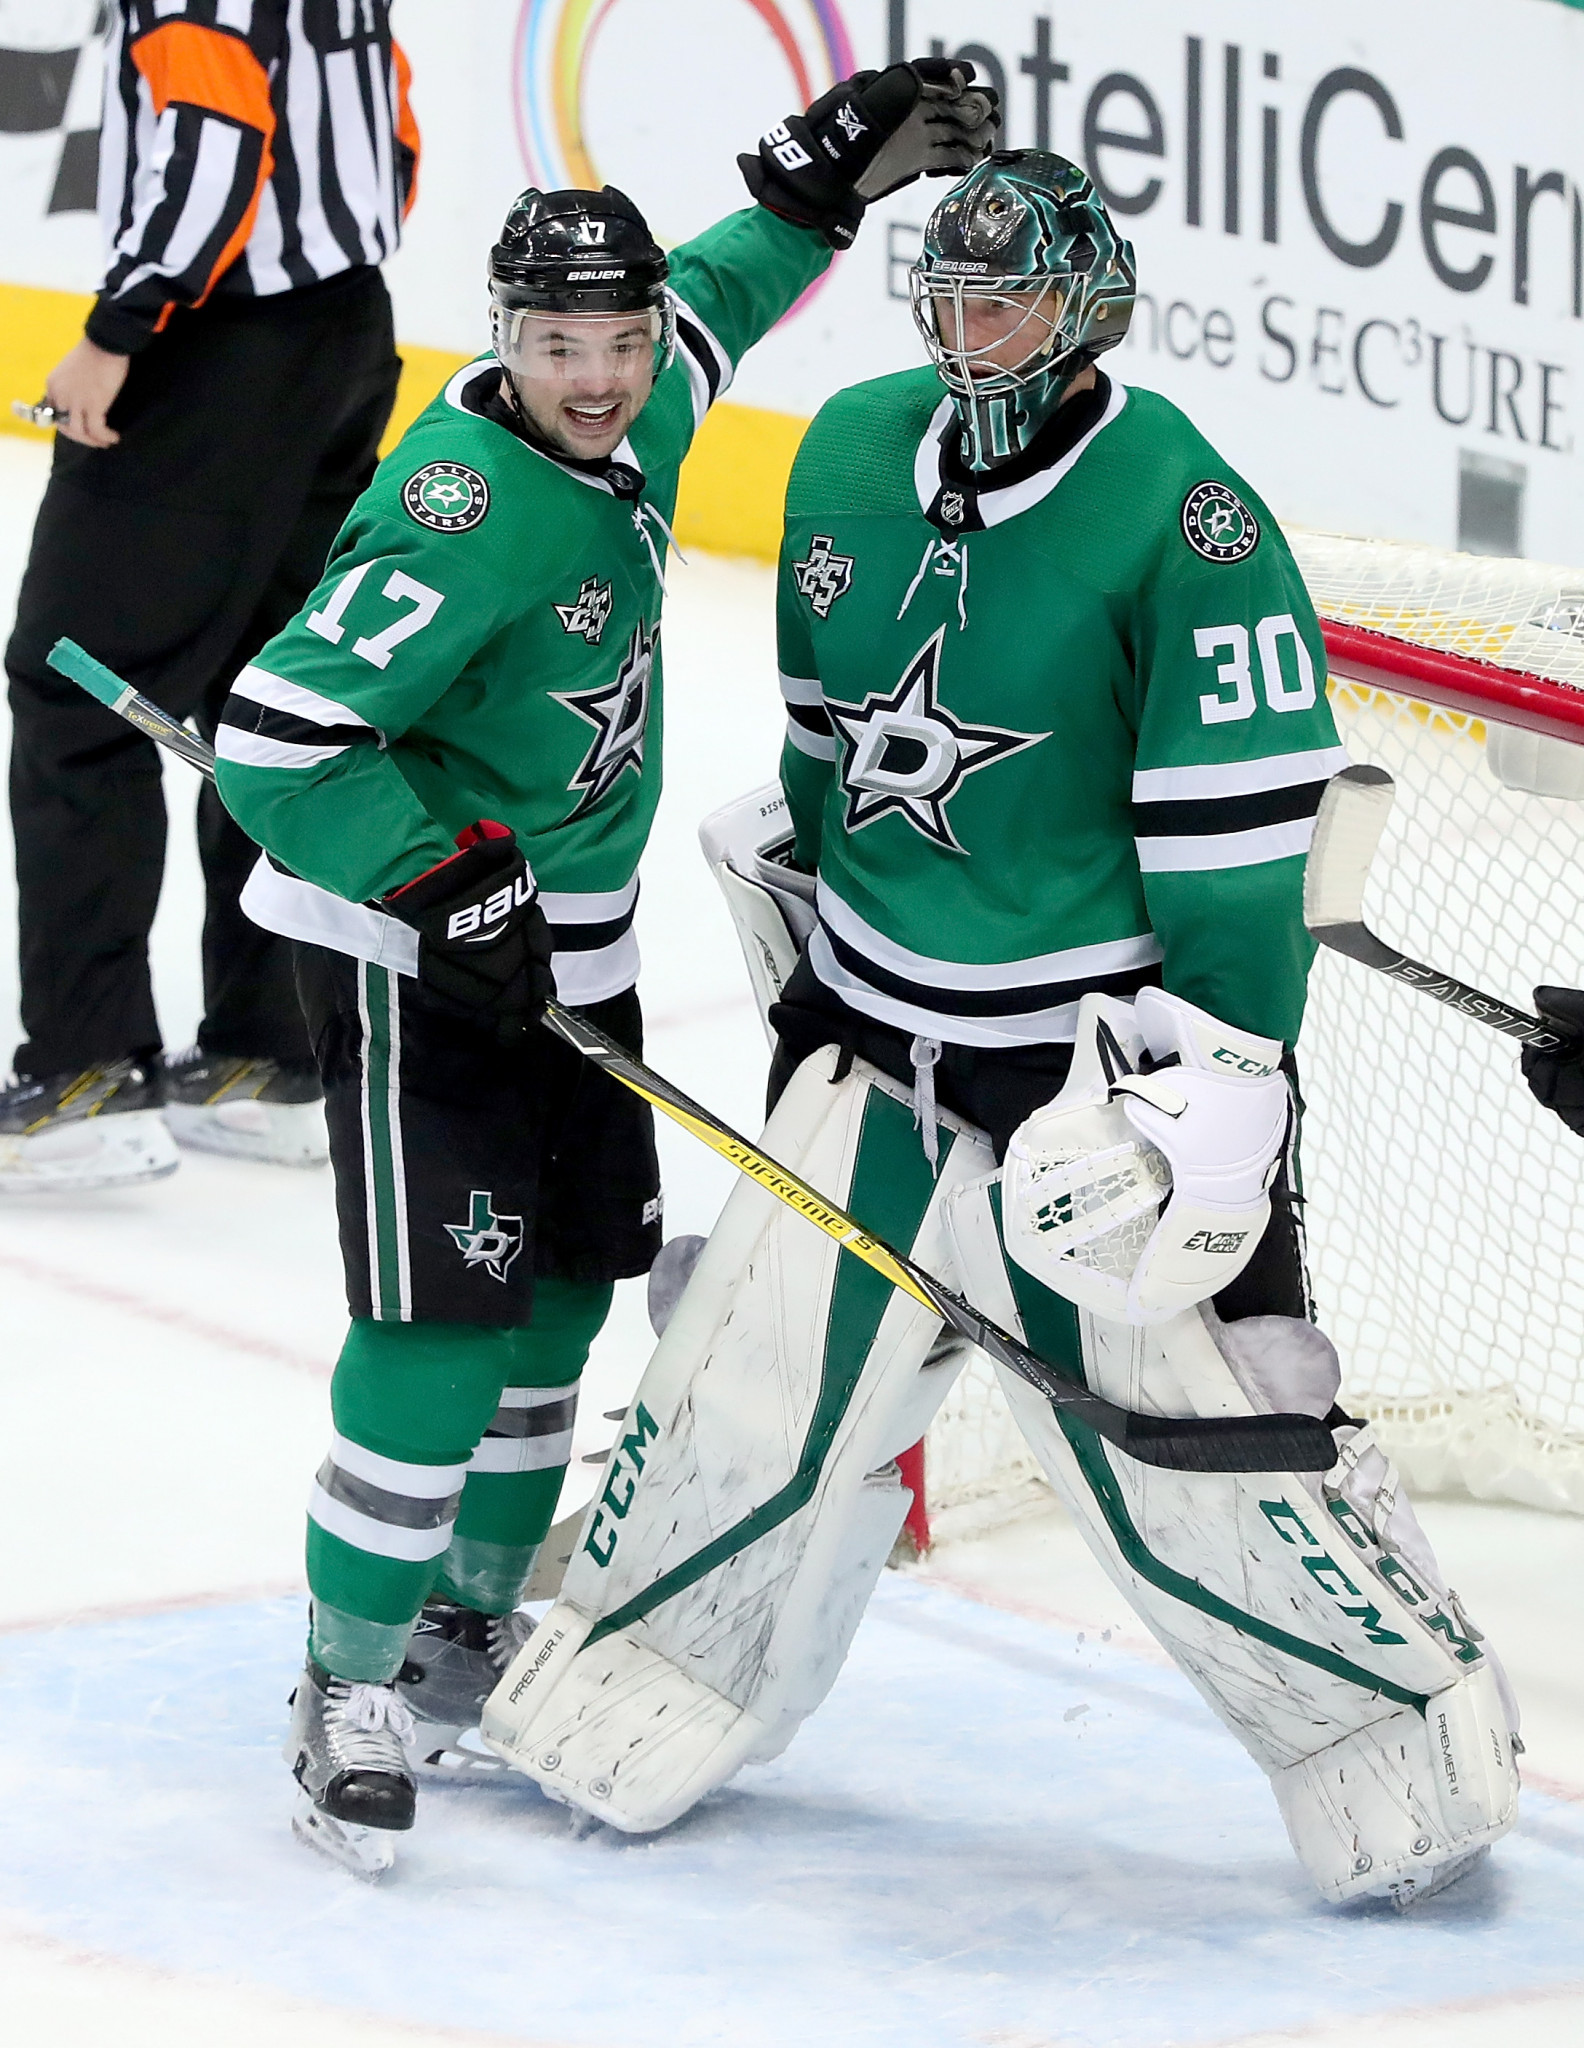 Devin Shore of the Dallas Stars NHL ice hockey team celebrates with team-mate Ben Bishop, number 30, after a 4-0 win over the Chicago Blackhawks this month. Dallas Stars are longtime clients of the MJP Centre in McKinney, Texas ©Getty Images